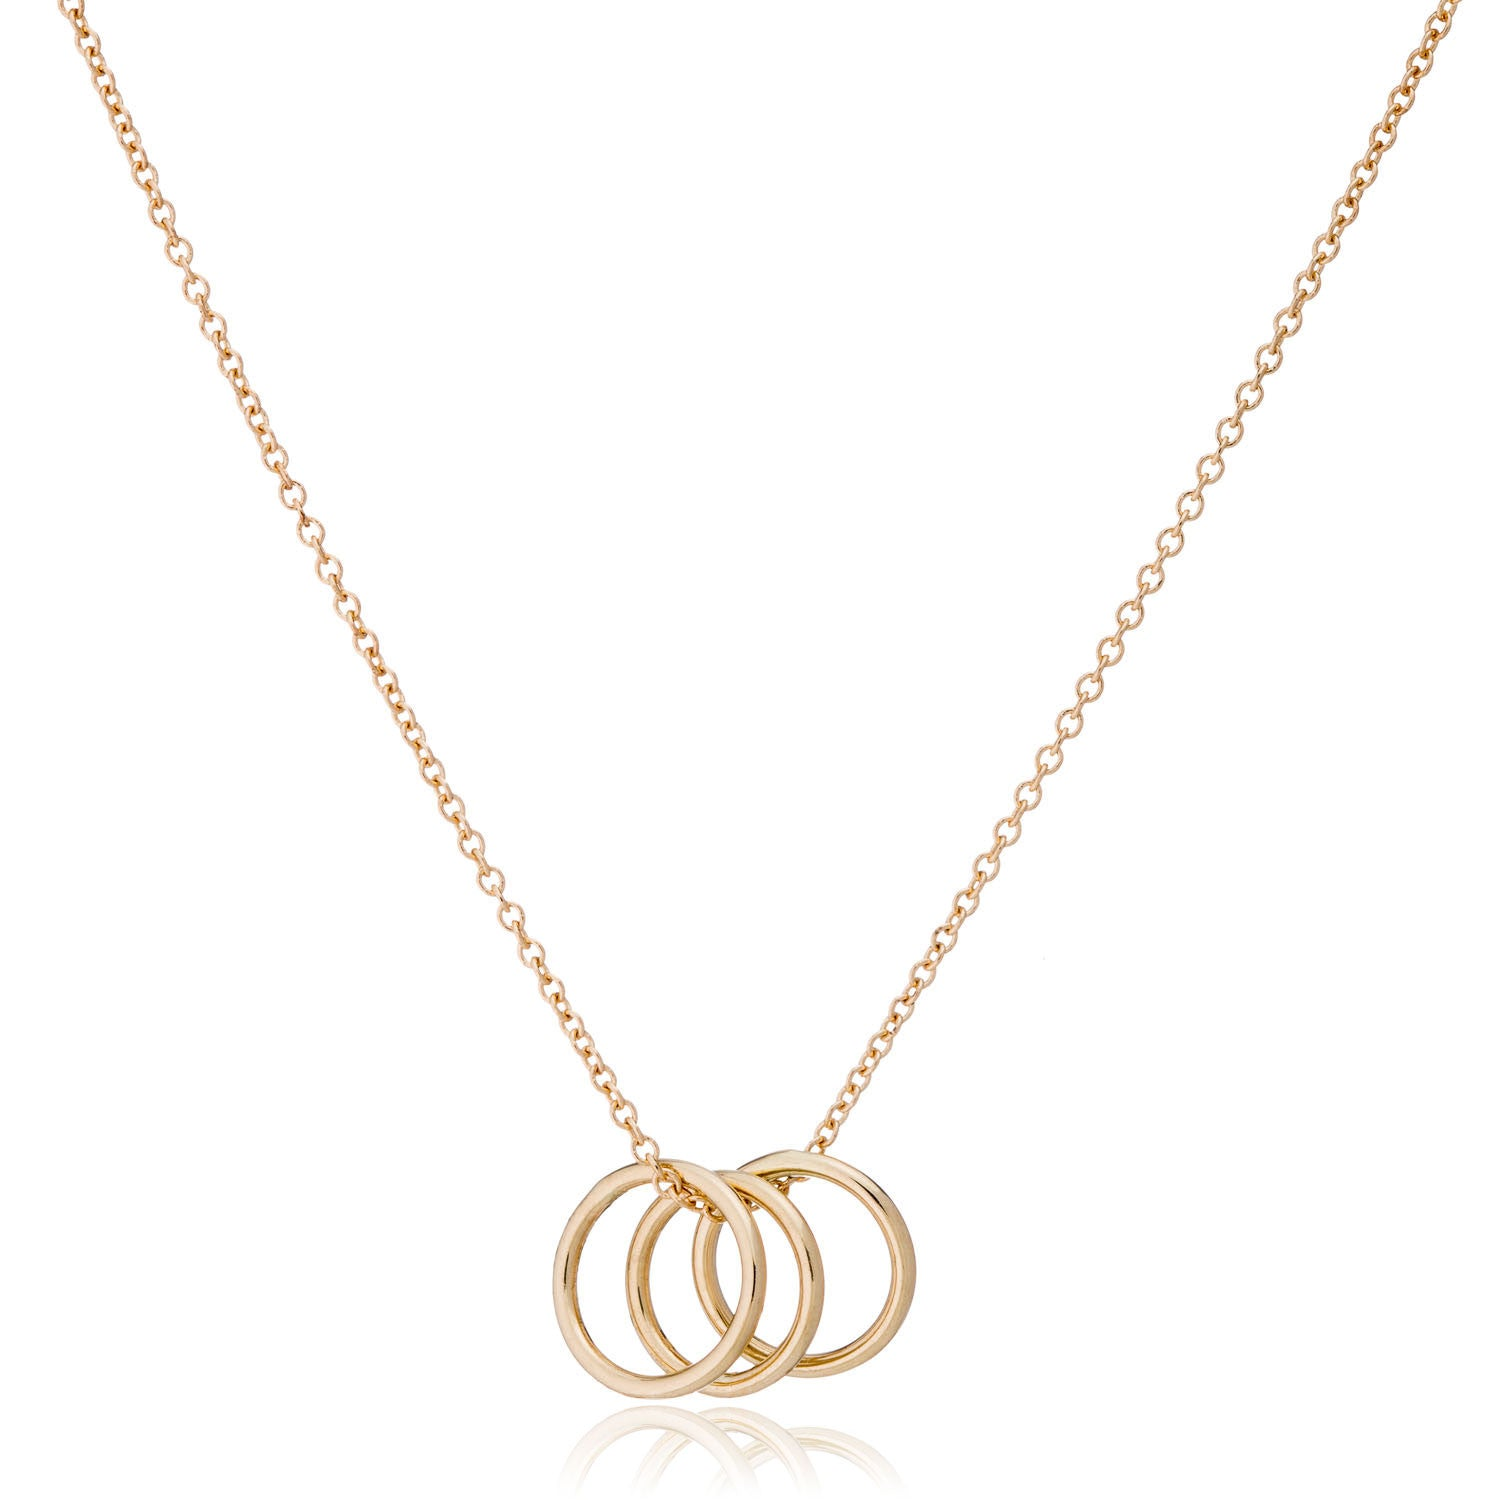 14K Gold Three Ring Necklace by Valerie Madison